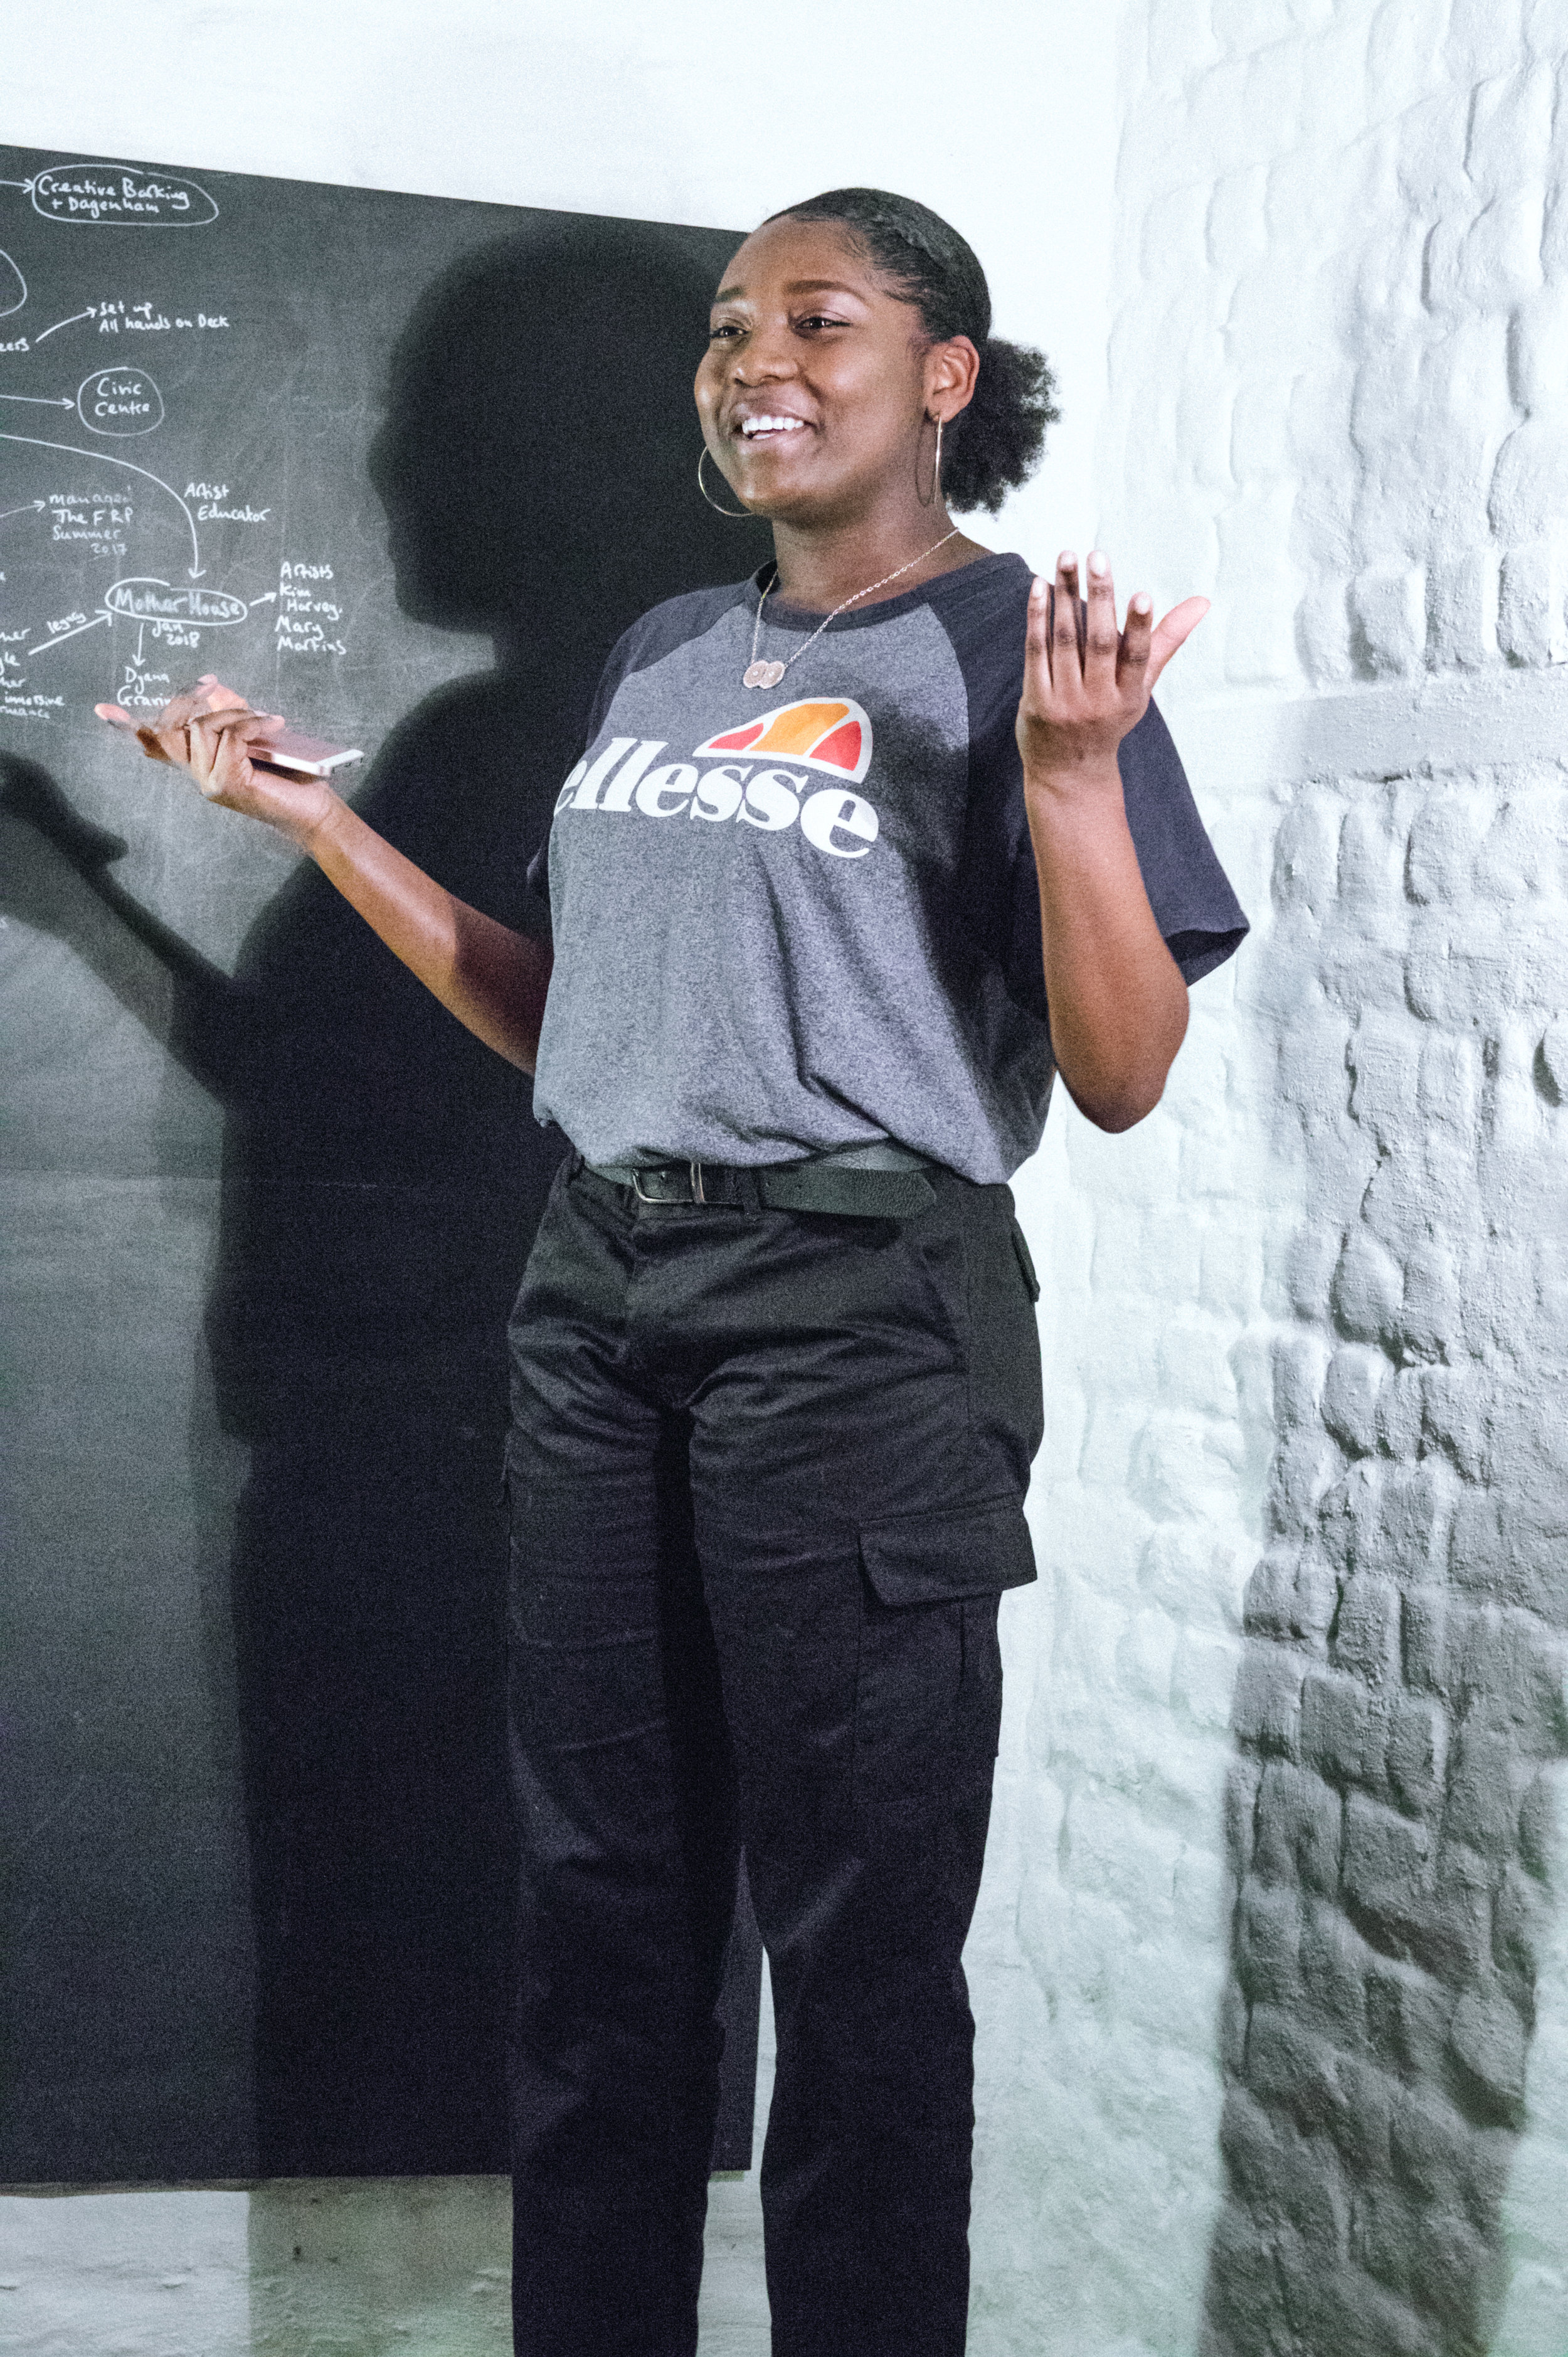 Sharon Machisa performed as a feature act at the Sofa Slam